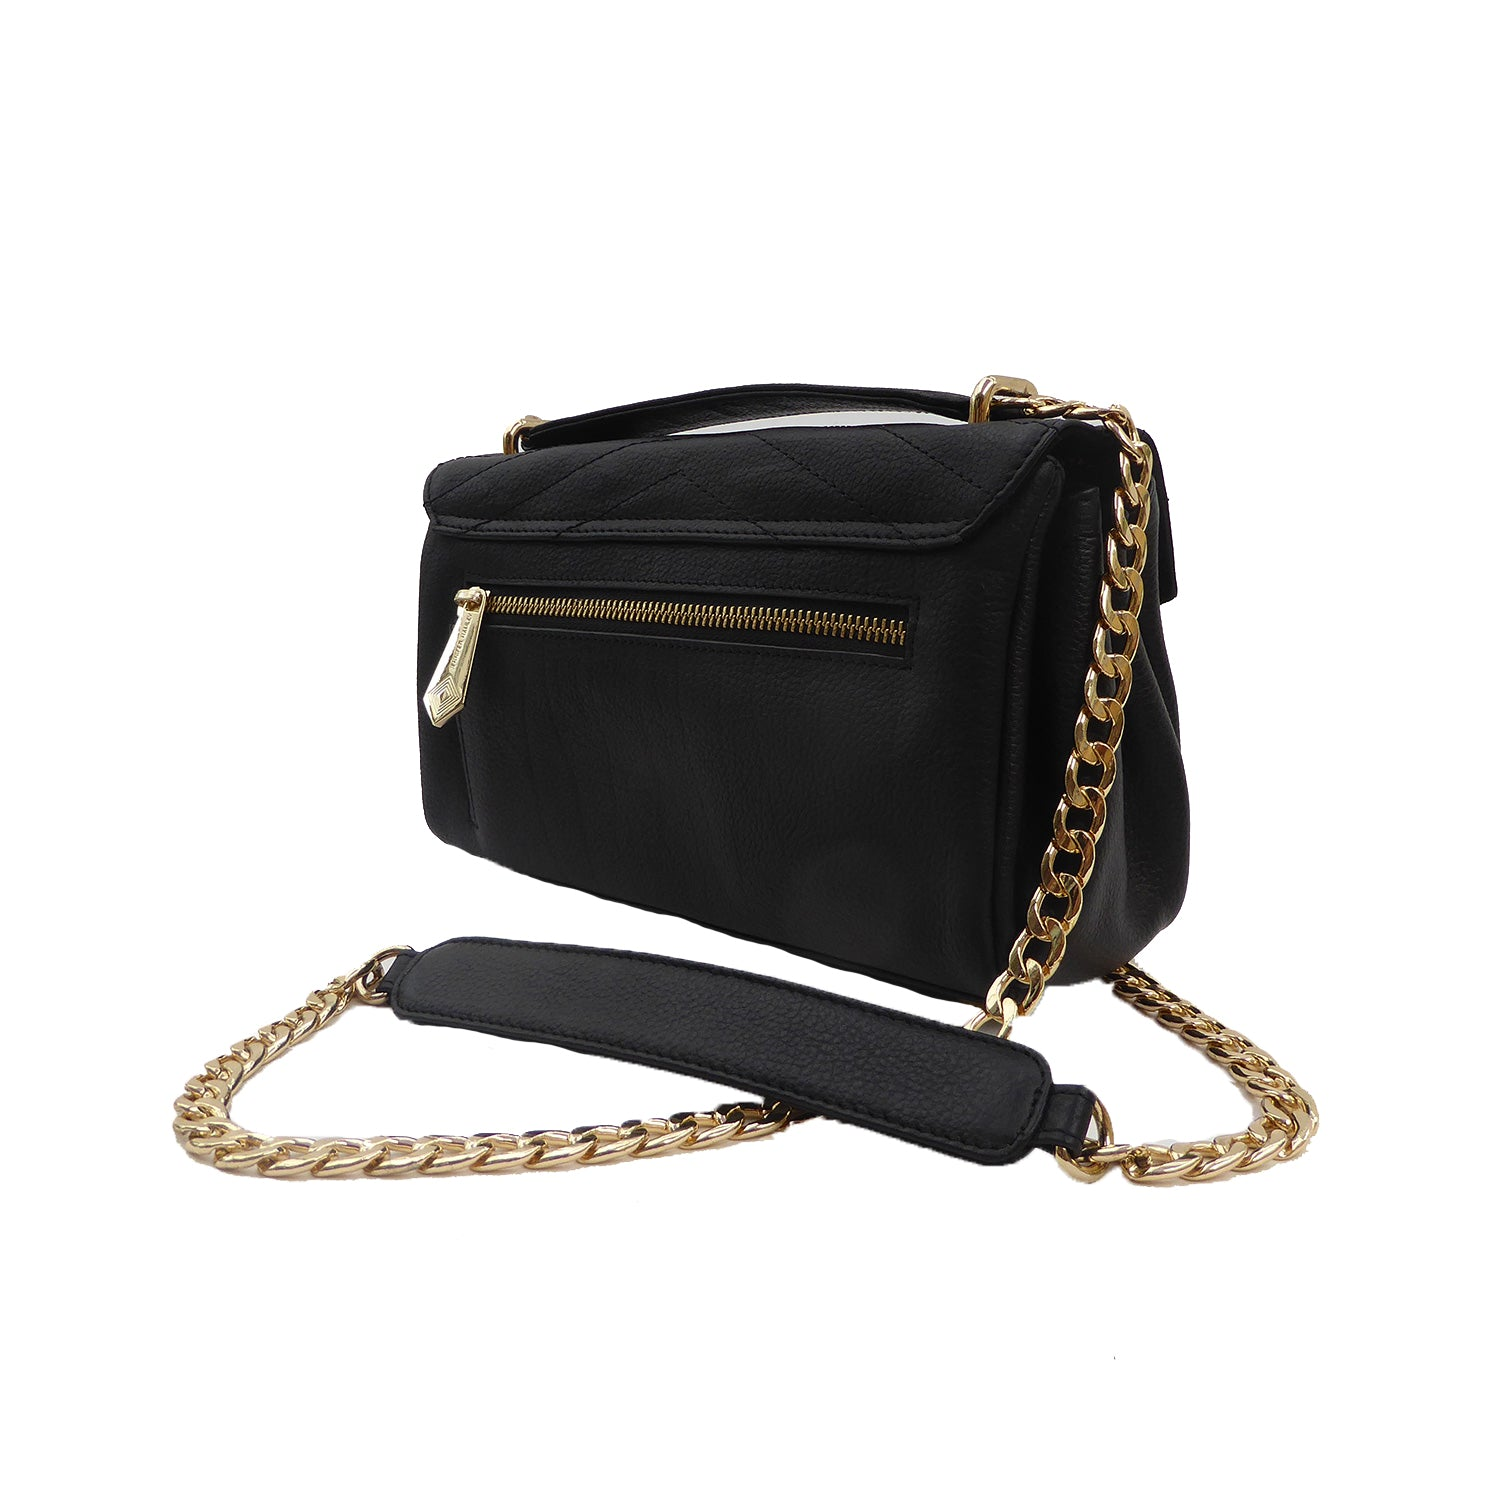 Mischief Evening Bag - Jennifer Hamley luxury leather handbags and laptop bag for working women